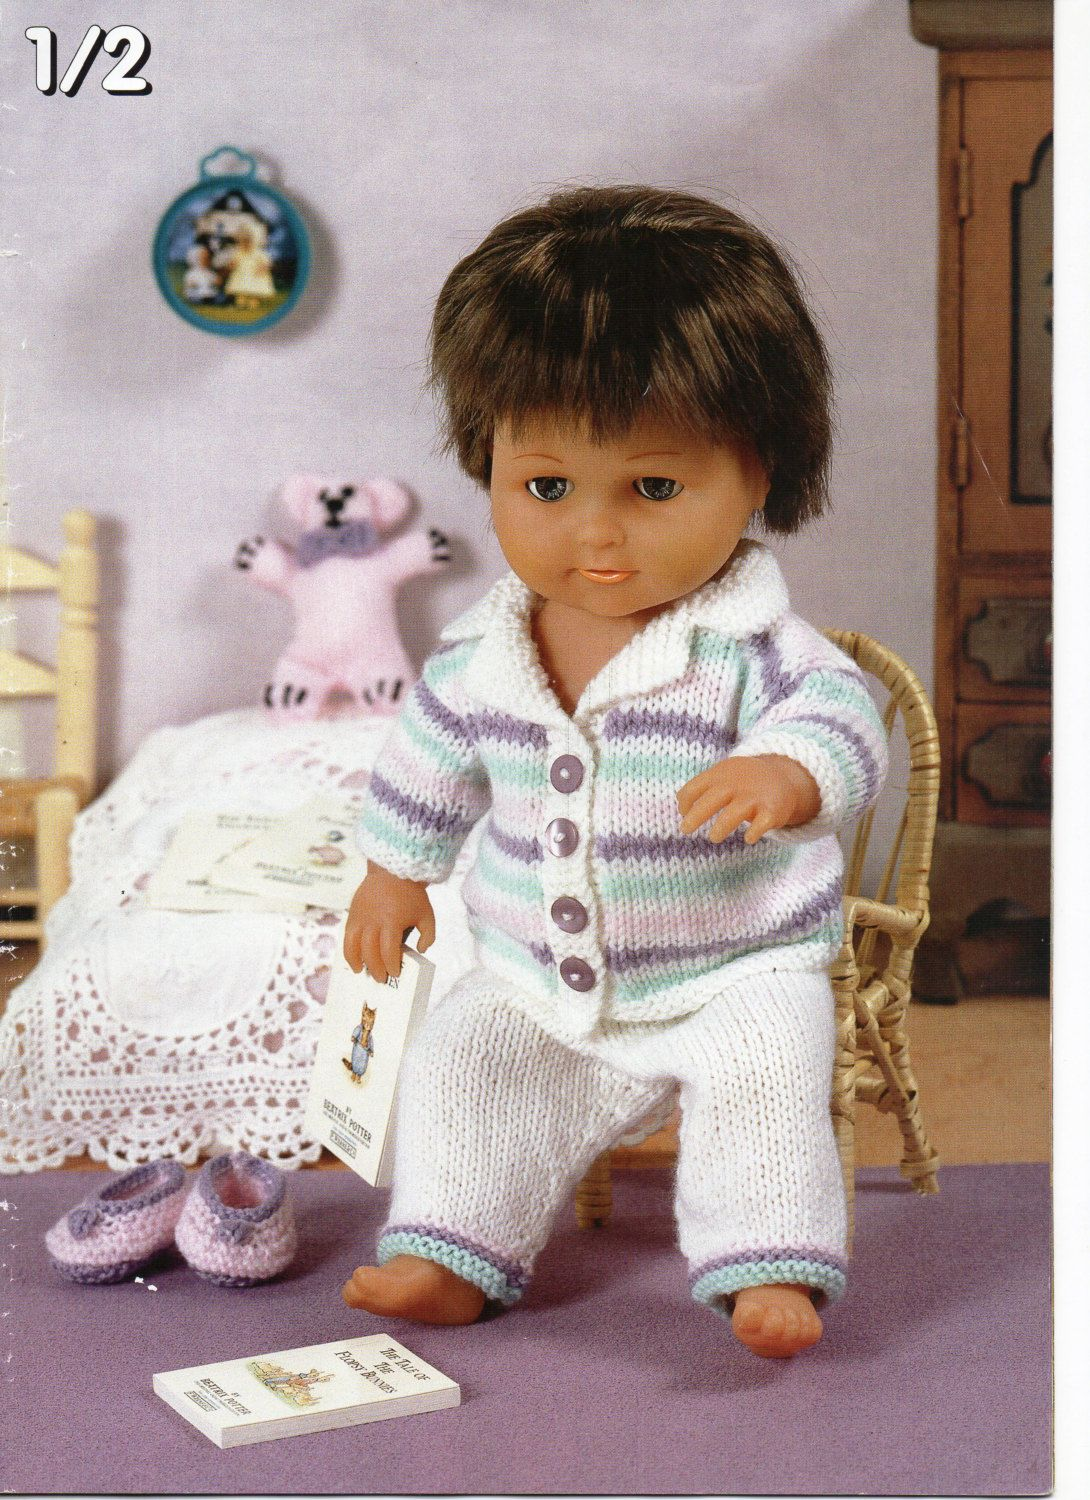 Baby Dolls Clothes Knitting Pattern Dolls Pyjamas Slippers Teddy Baby Reborn Boy Doll 12 22 Inch Doll Dk Bab Knitting Dolls Clothes Baby Knitting Doll Clothes